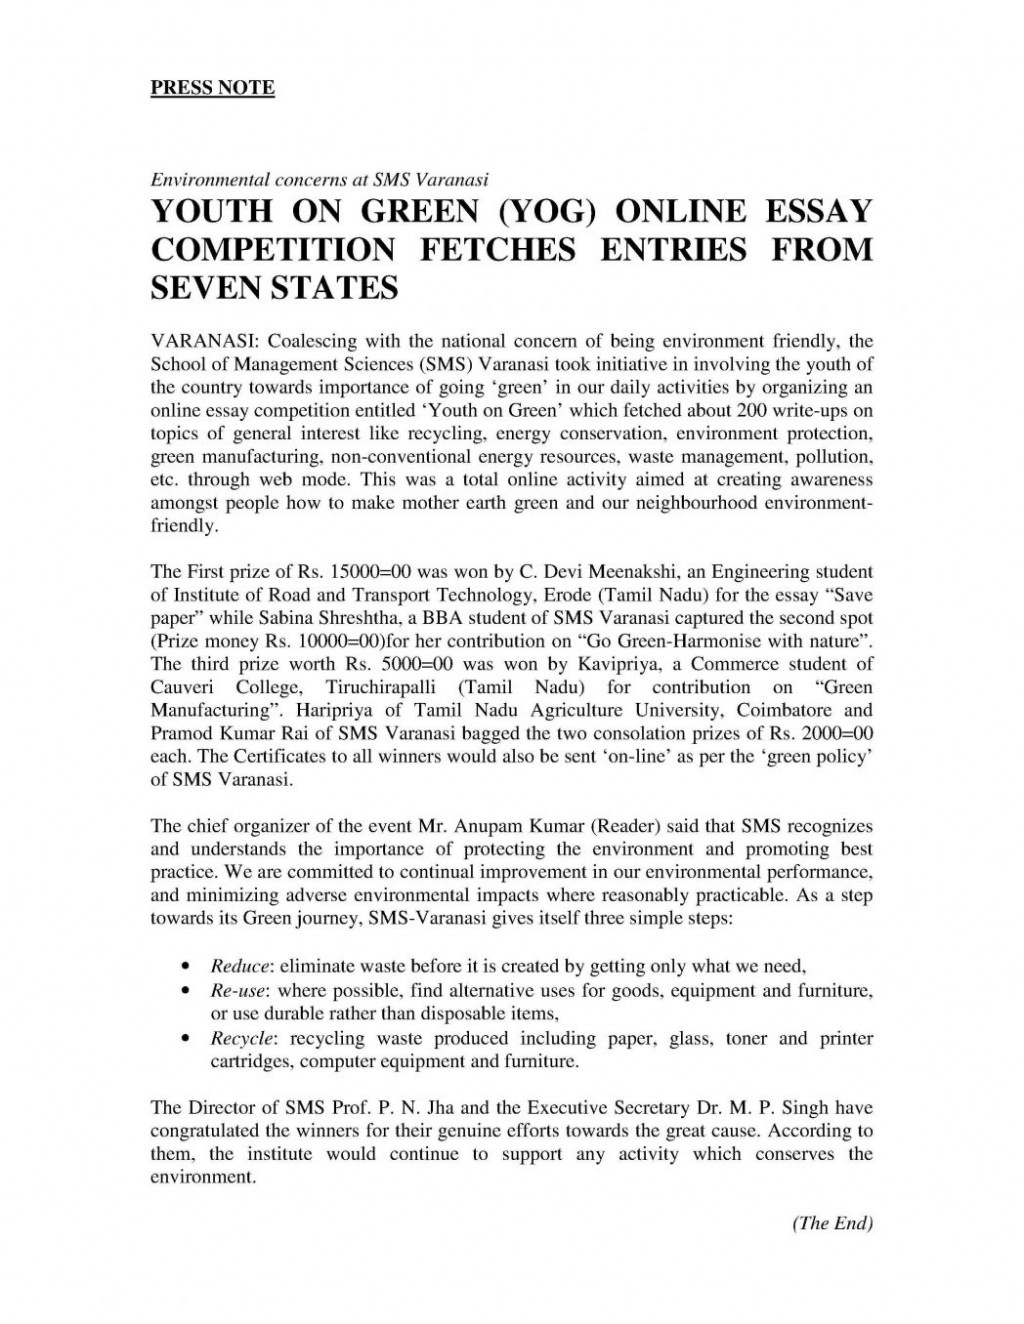 007 Environmental Protection Essay Example Essays On Good Habits Writing Skills Online Yog Press Re Bryant And Clark Canadian Book Process Styles Experience Stupendous In Tamil English Pdf Hindi Large